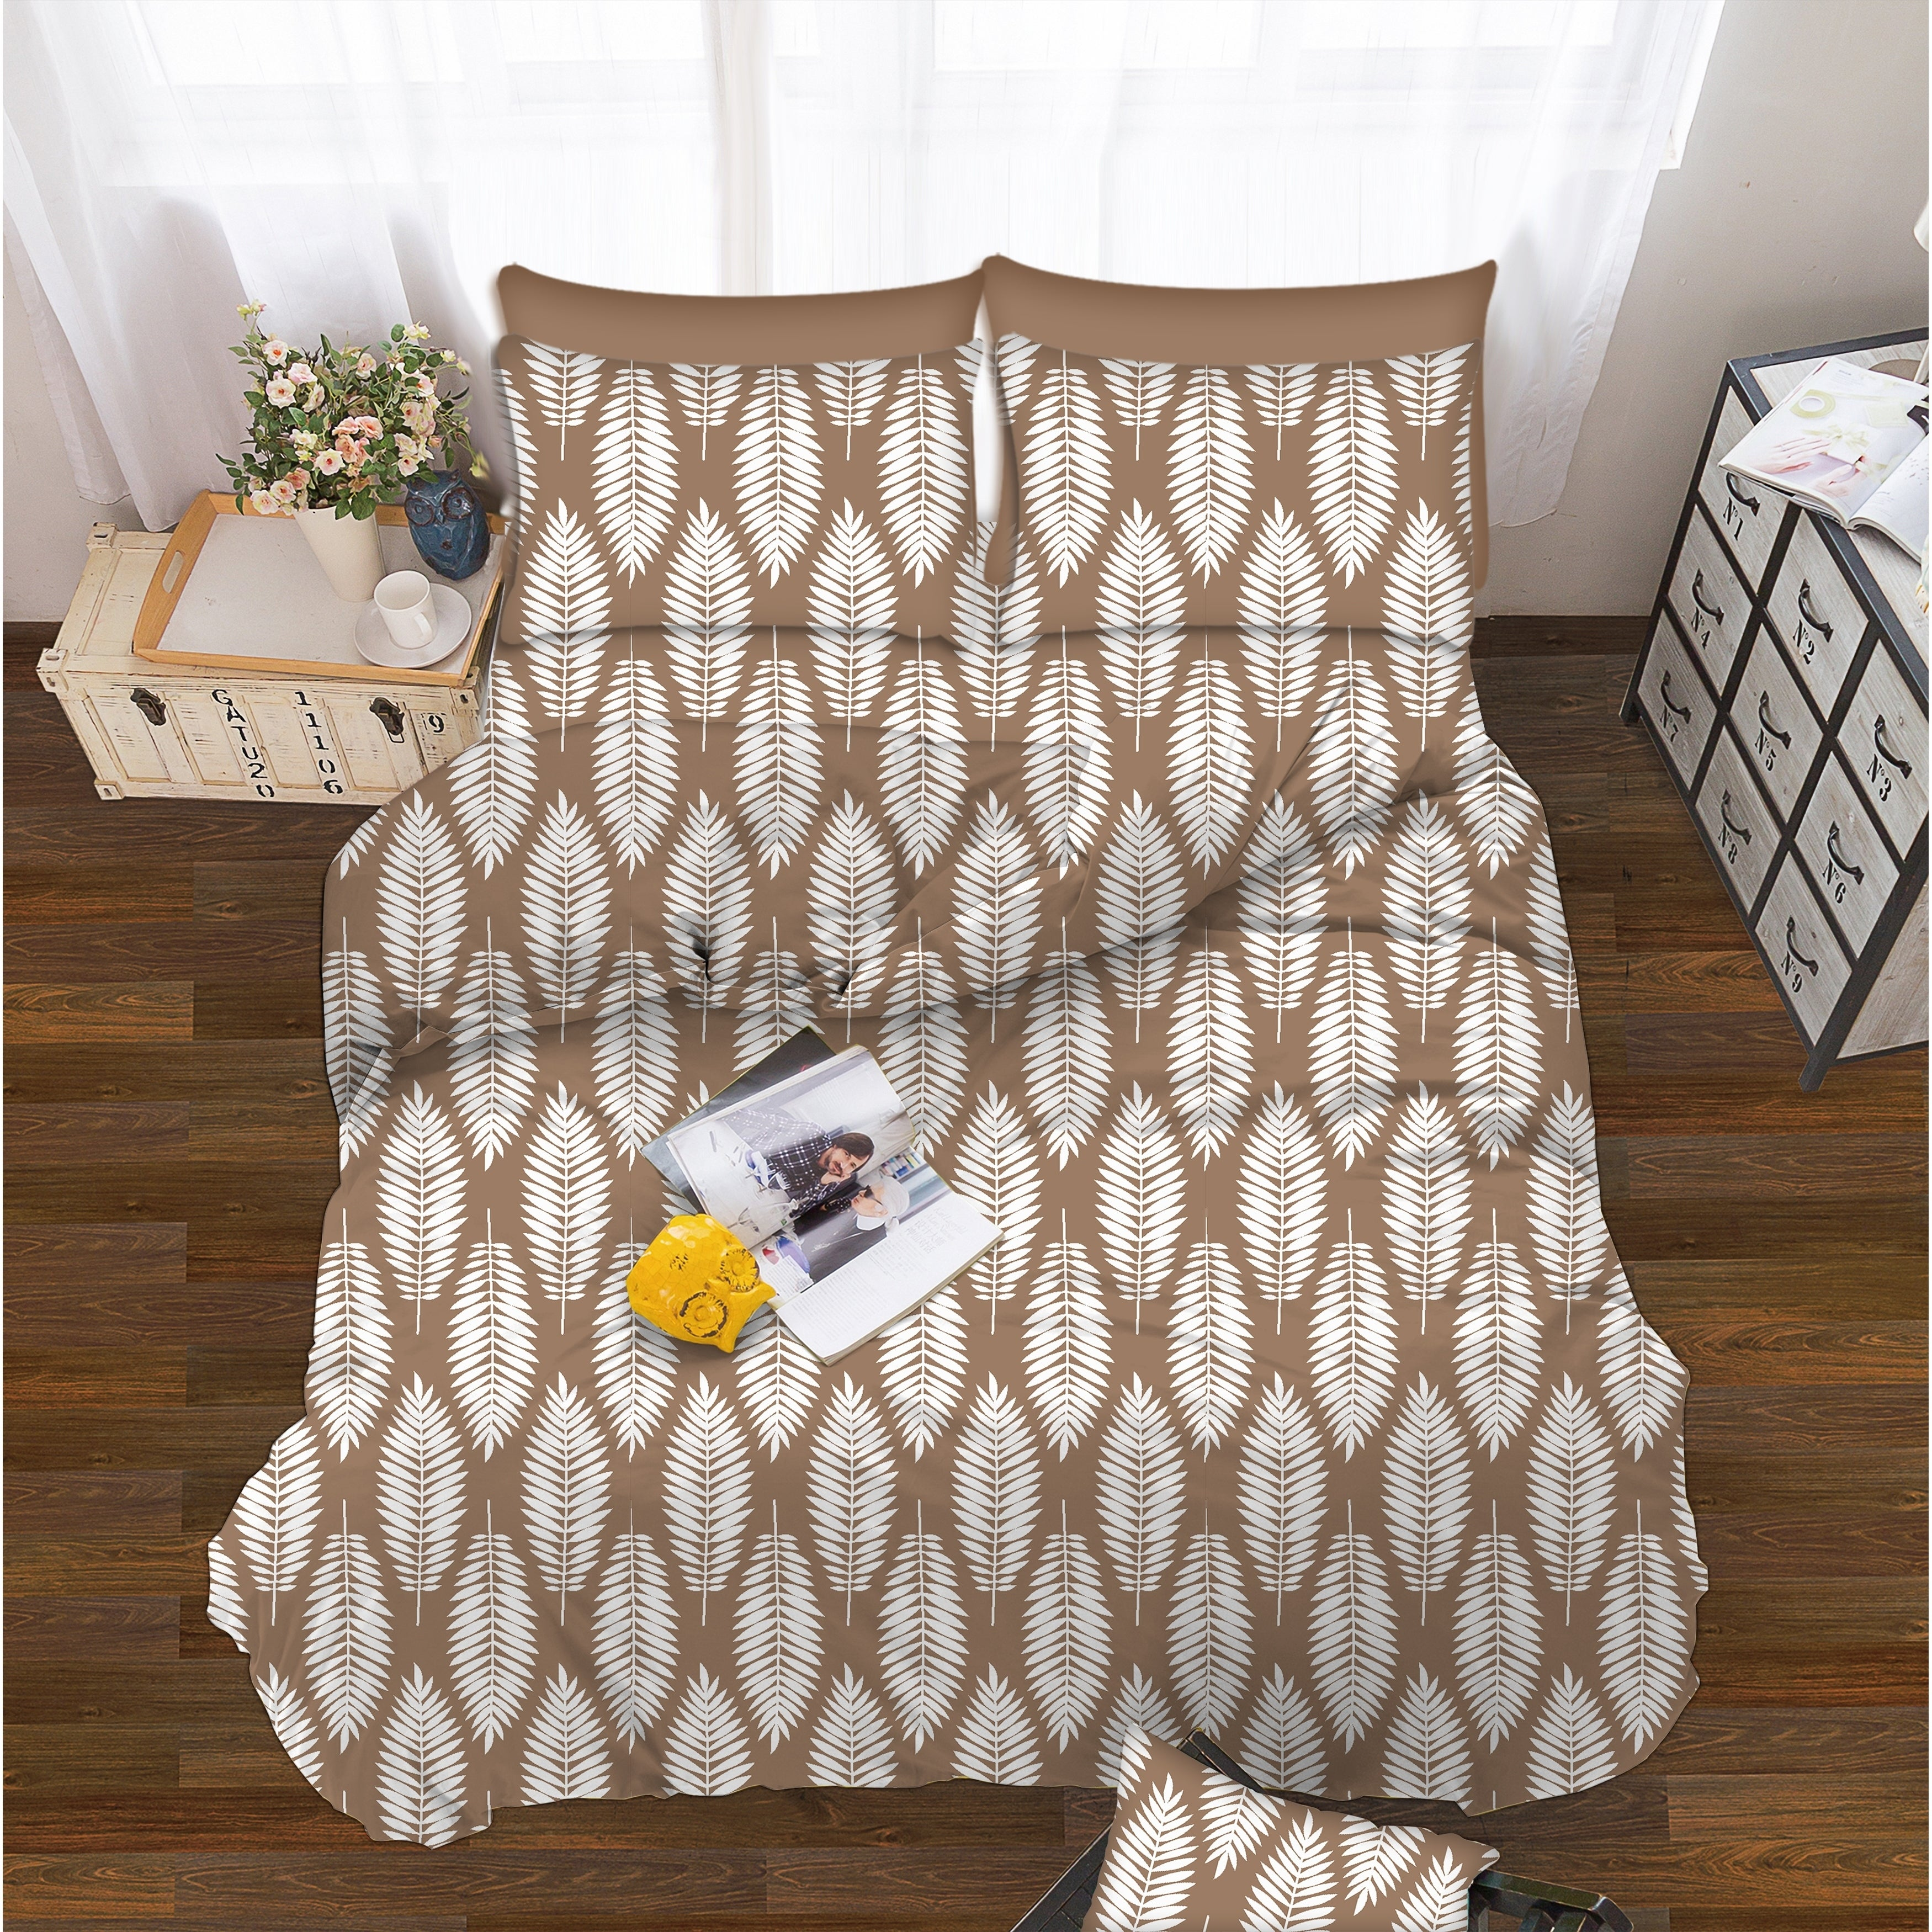 Shop Elegant Comfort 6 Piece Feather Pattern Bed Sheet Set   On Sale   Free  Shipping On Orders Over $45   Overstock   26975683